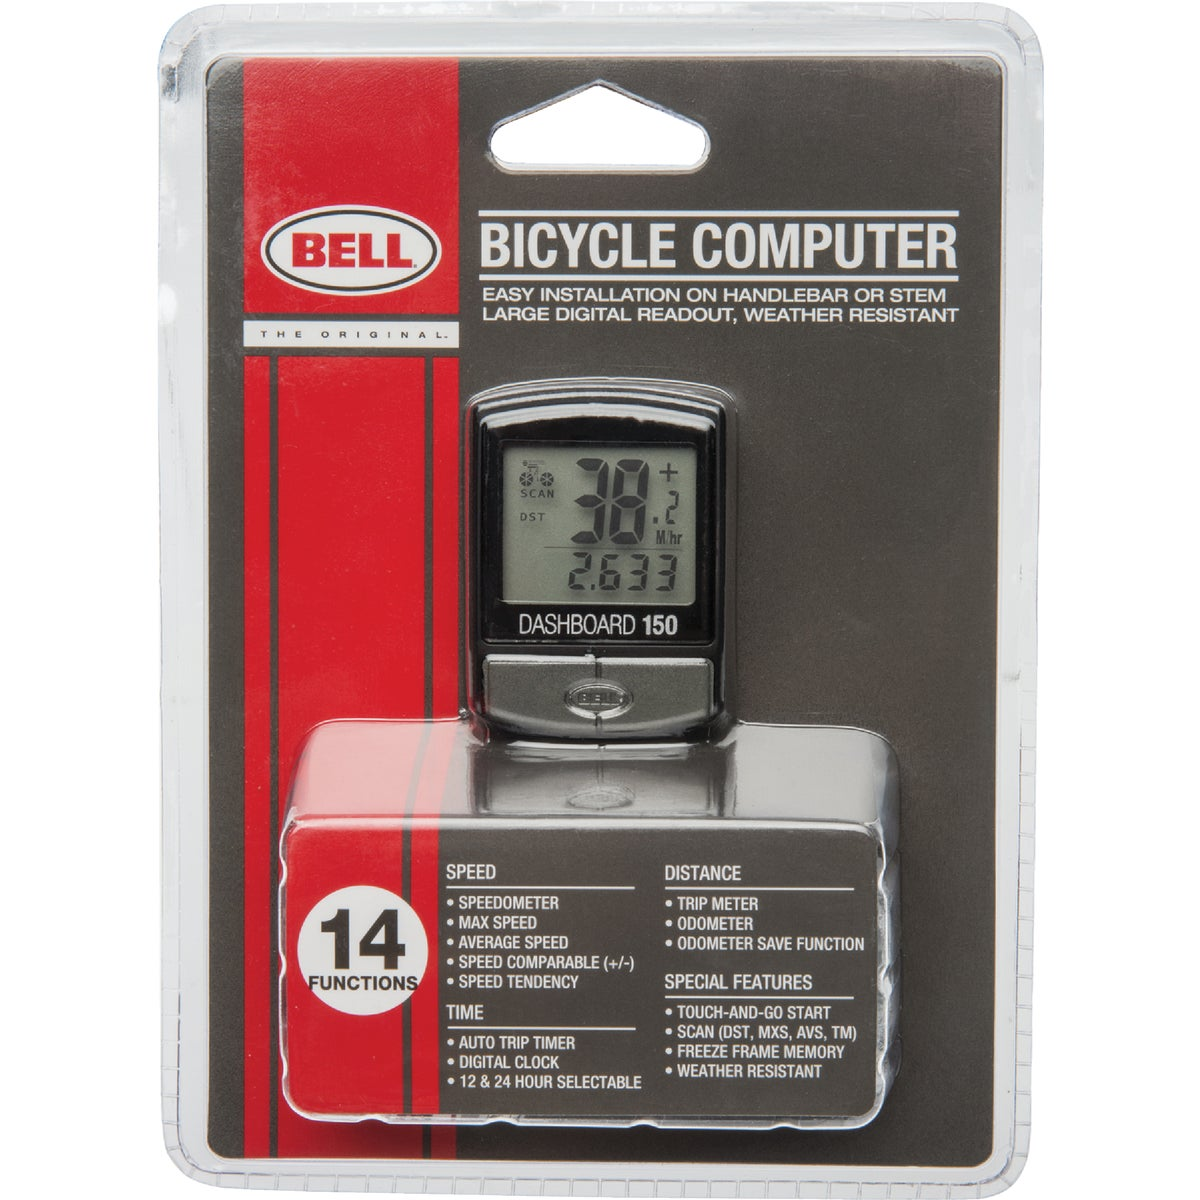 12FUNCTION BIKE COMPUTER - 7001115 by Bell Sports